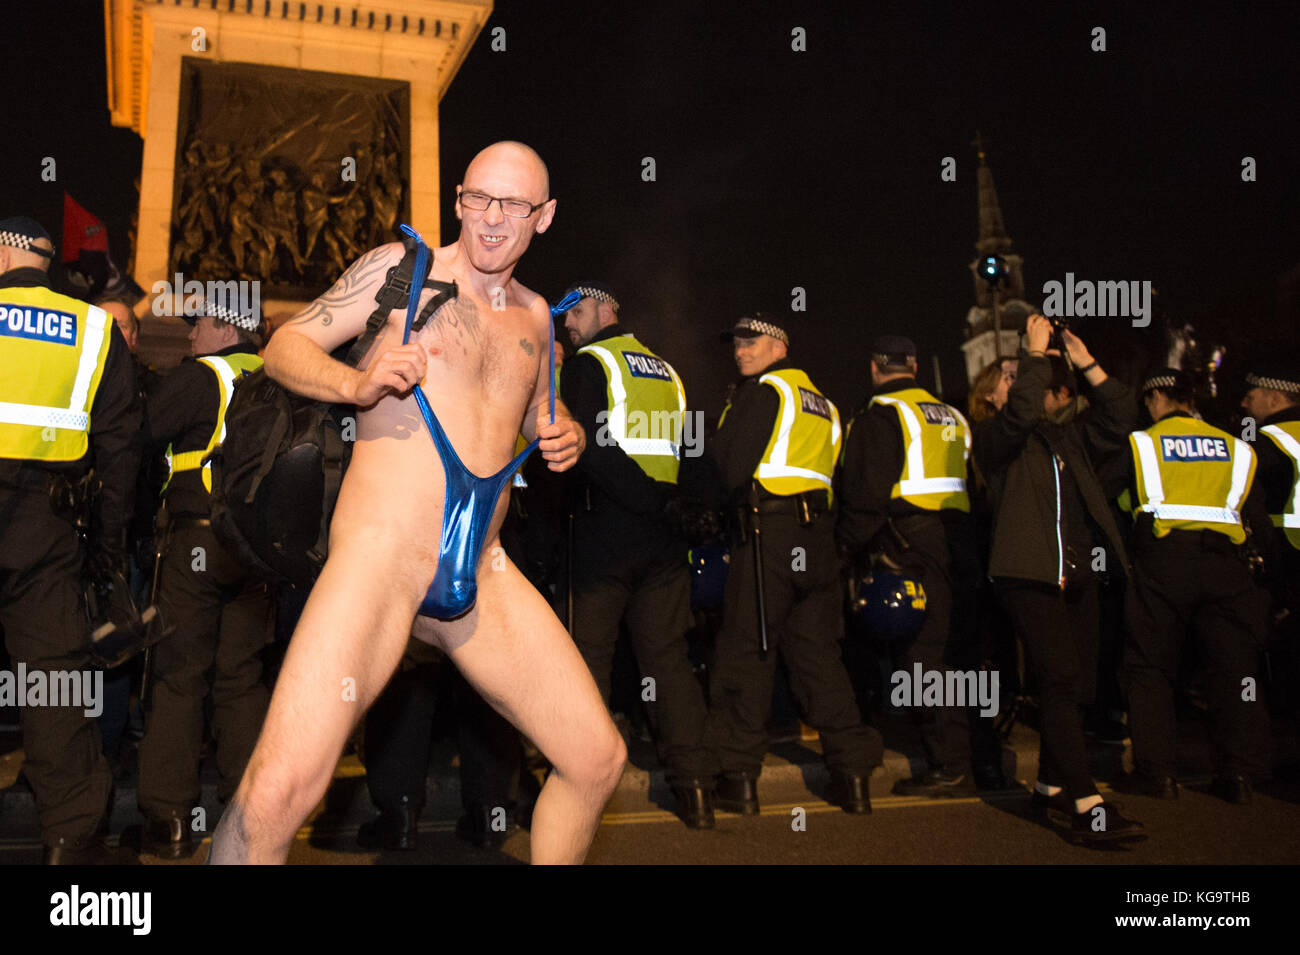 London, United Kingdom. 05th Nov, 2017. Million Mask March 2017 takes place in central London. A protester in a - Stock Image